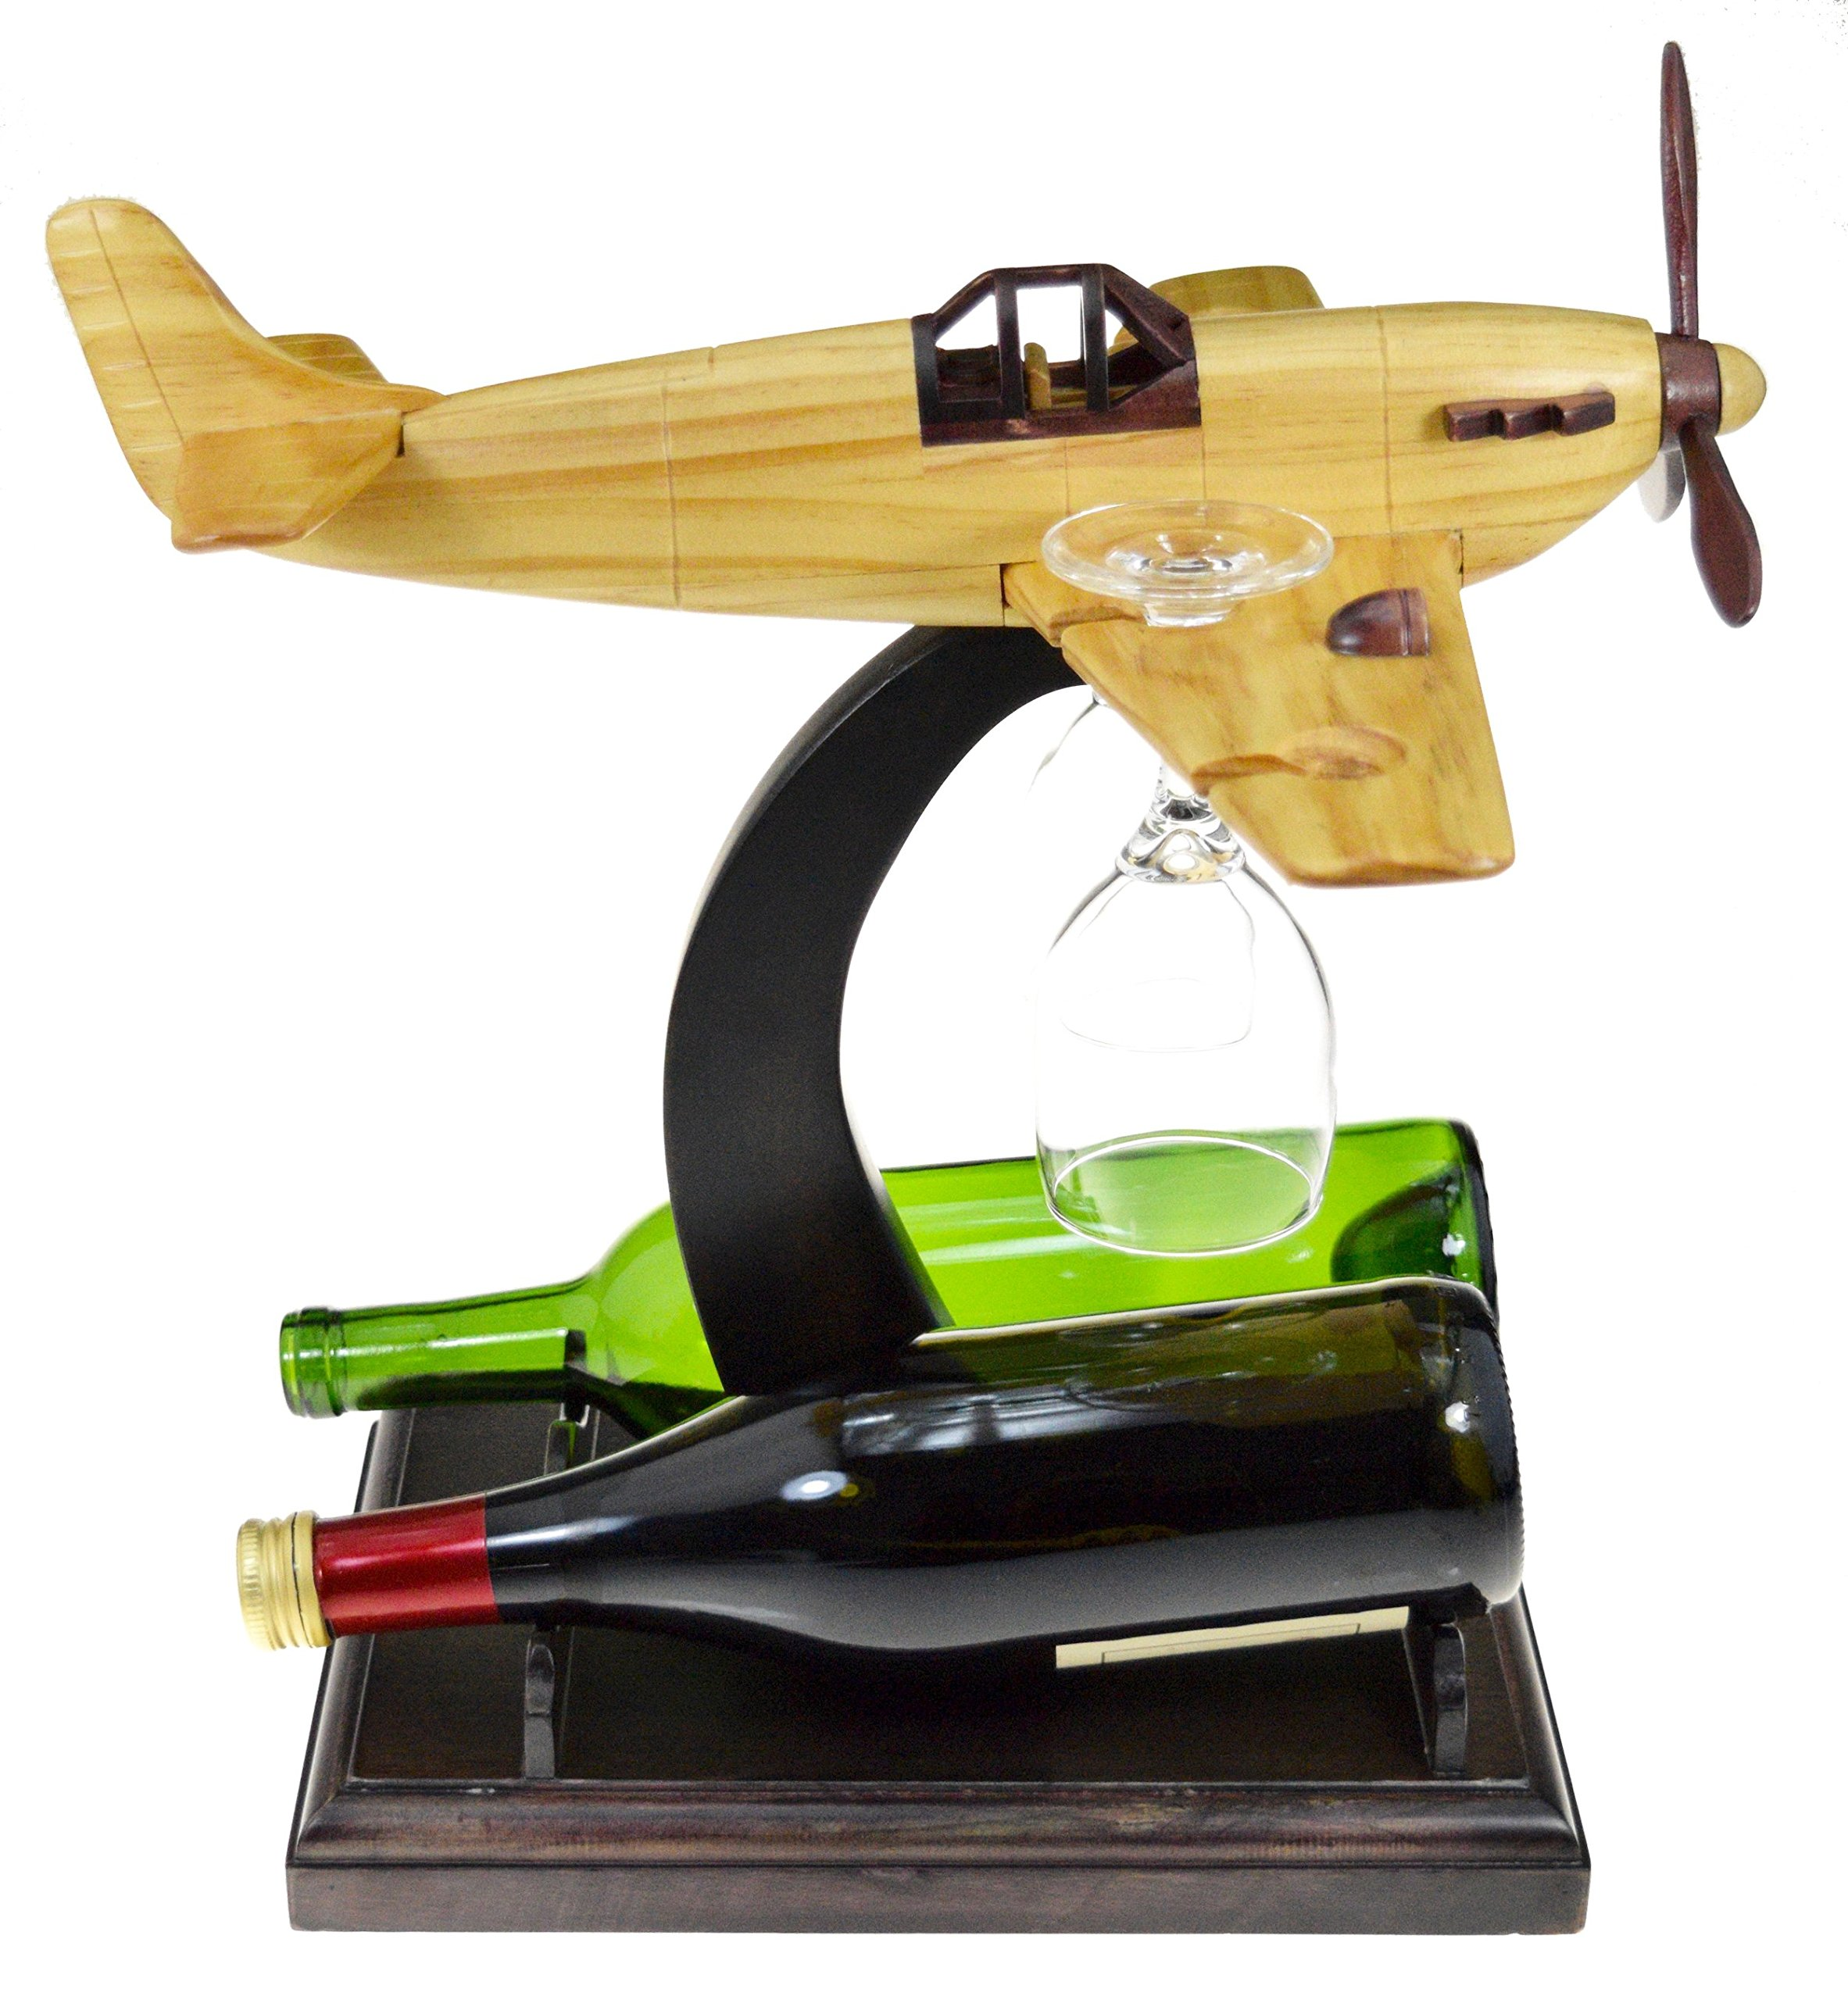 Airplane Shaped Wine Glass Rack and Wine Bottle Rack - Aviation Enthusiast, Tabletop Wooden Plane Wine Glass Hanger and Bottle Holder - Great Gift for Pilot (The Vino Hangar) by PrestigeHaus